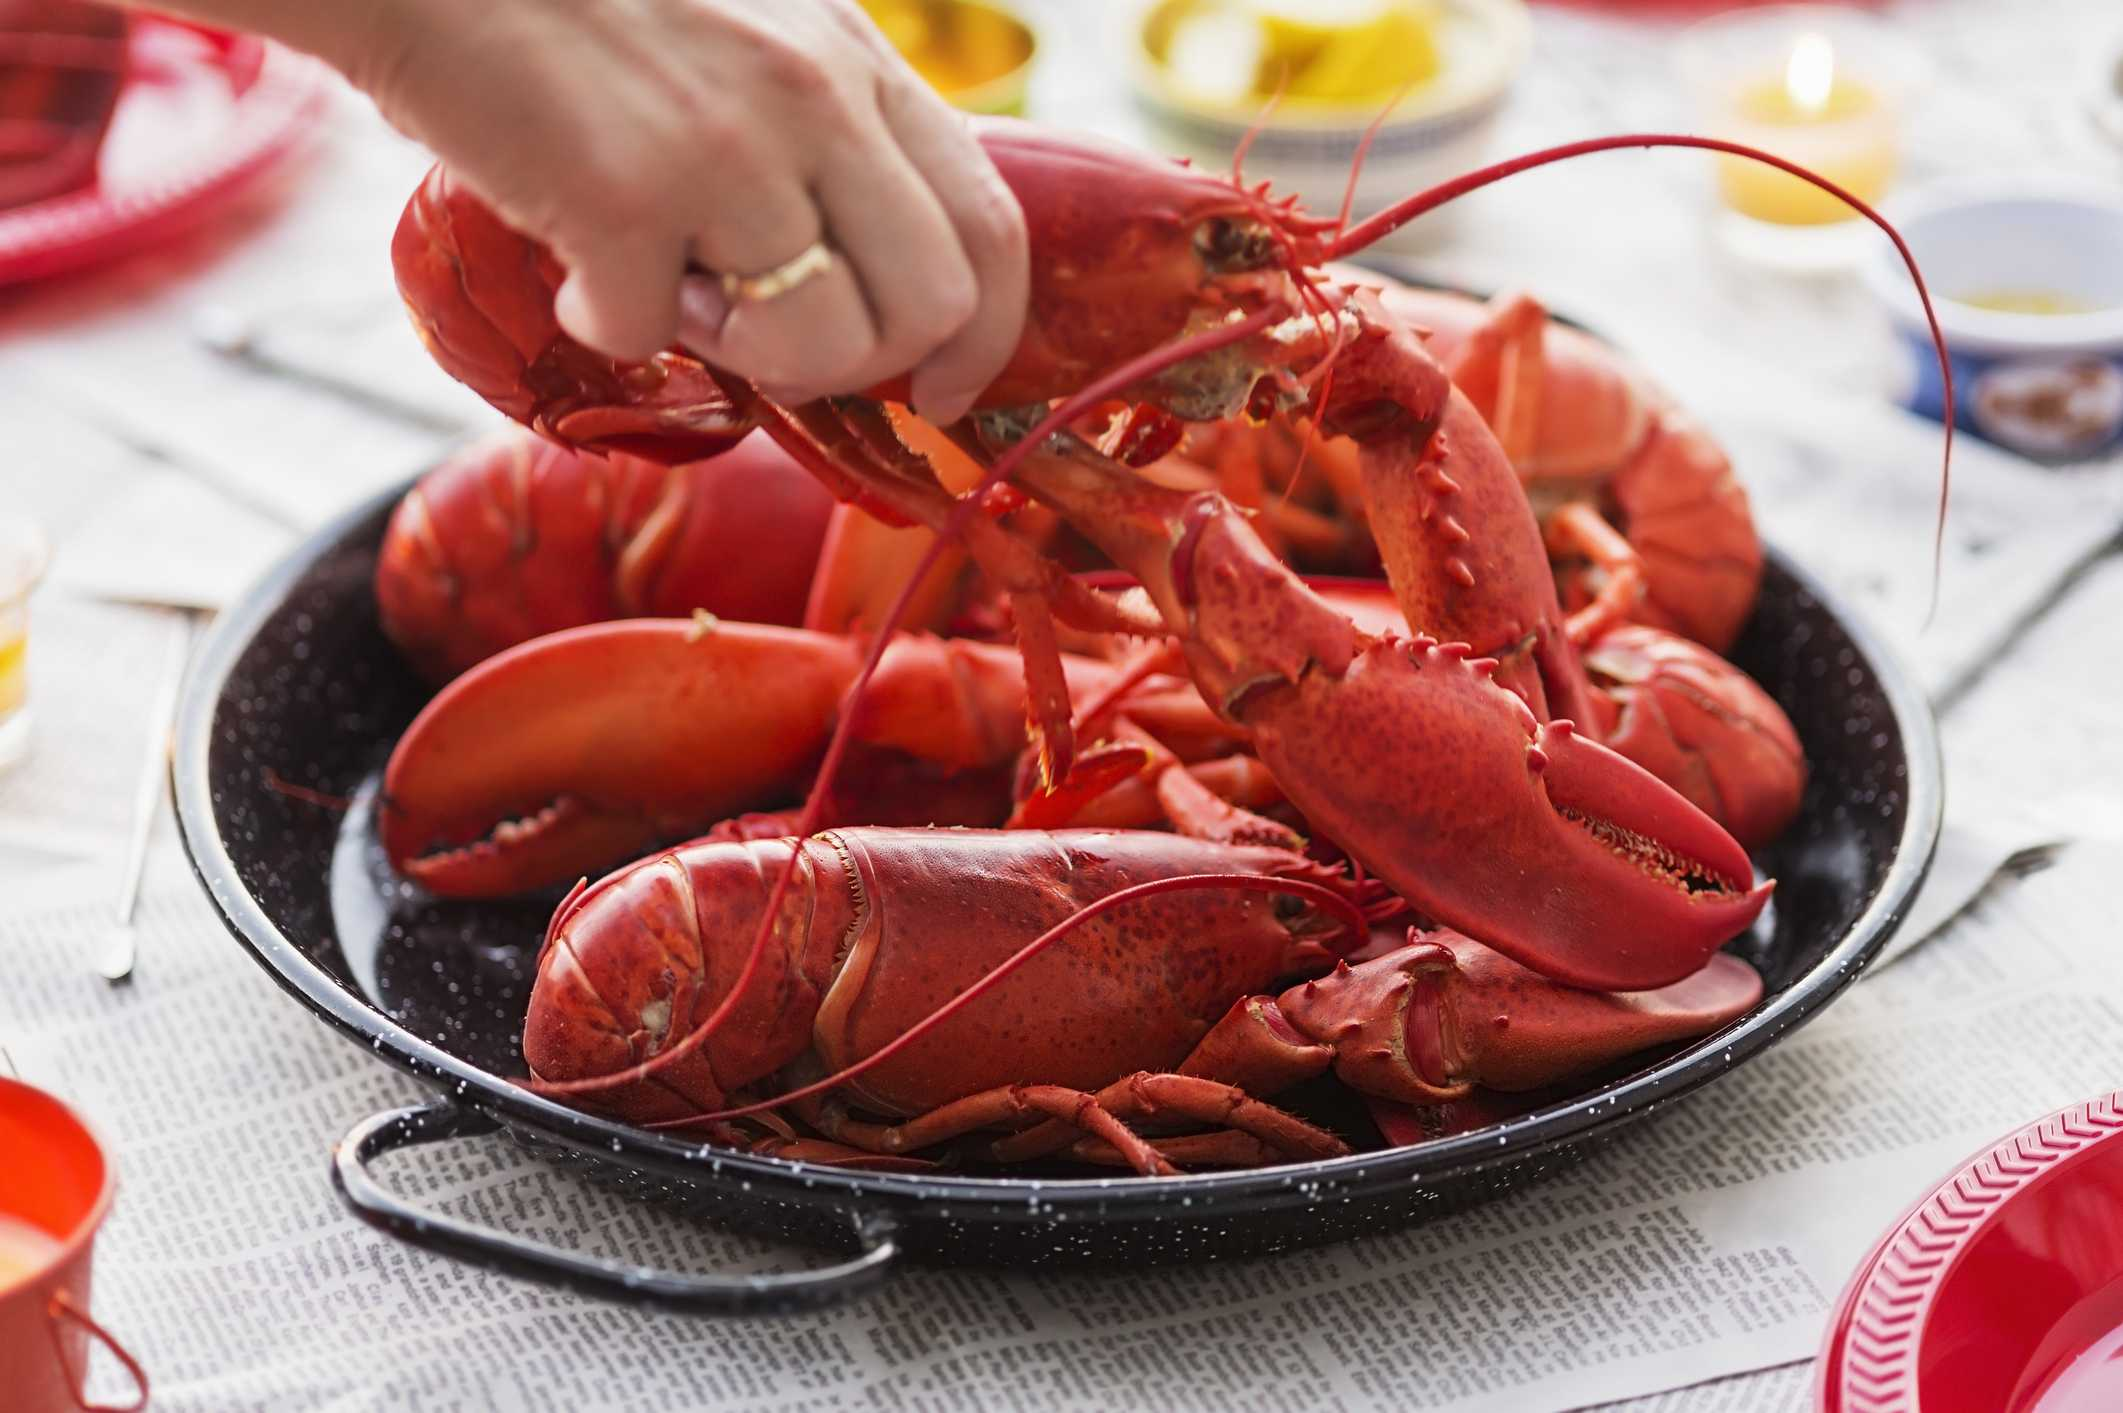 Regulators puts brakes on restaurant that wanted to sedate lobsters with pot